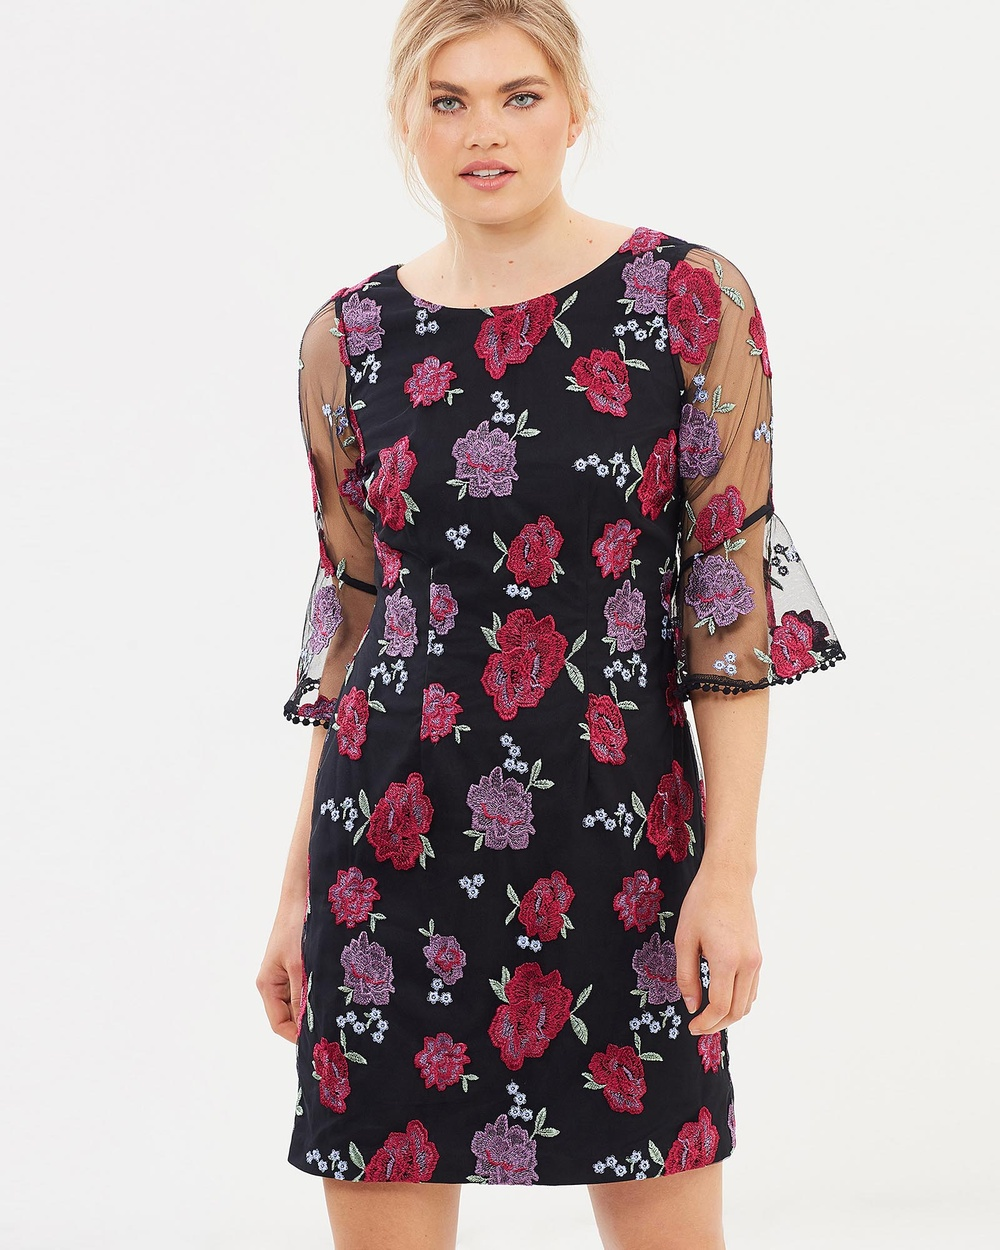 Review Azzurra Floral Dress Dresses Black & Multi Azzurra Floral Dress